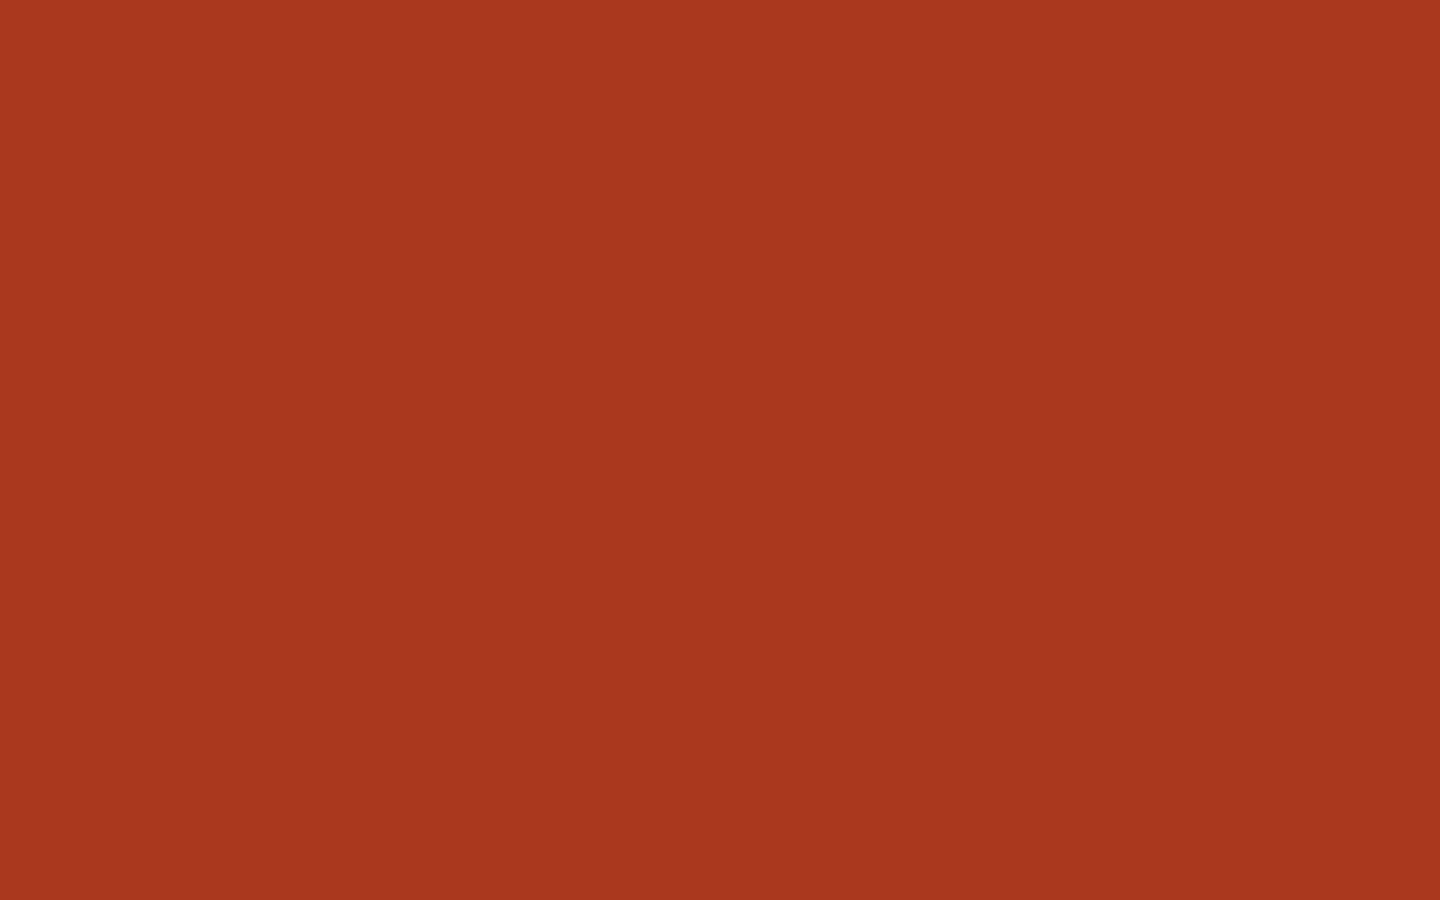 1440x900 Chinese Red Solid Color Background